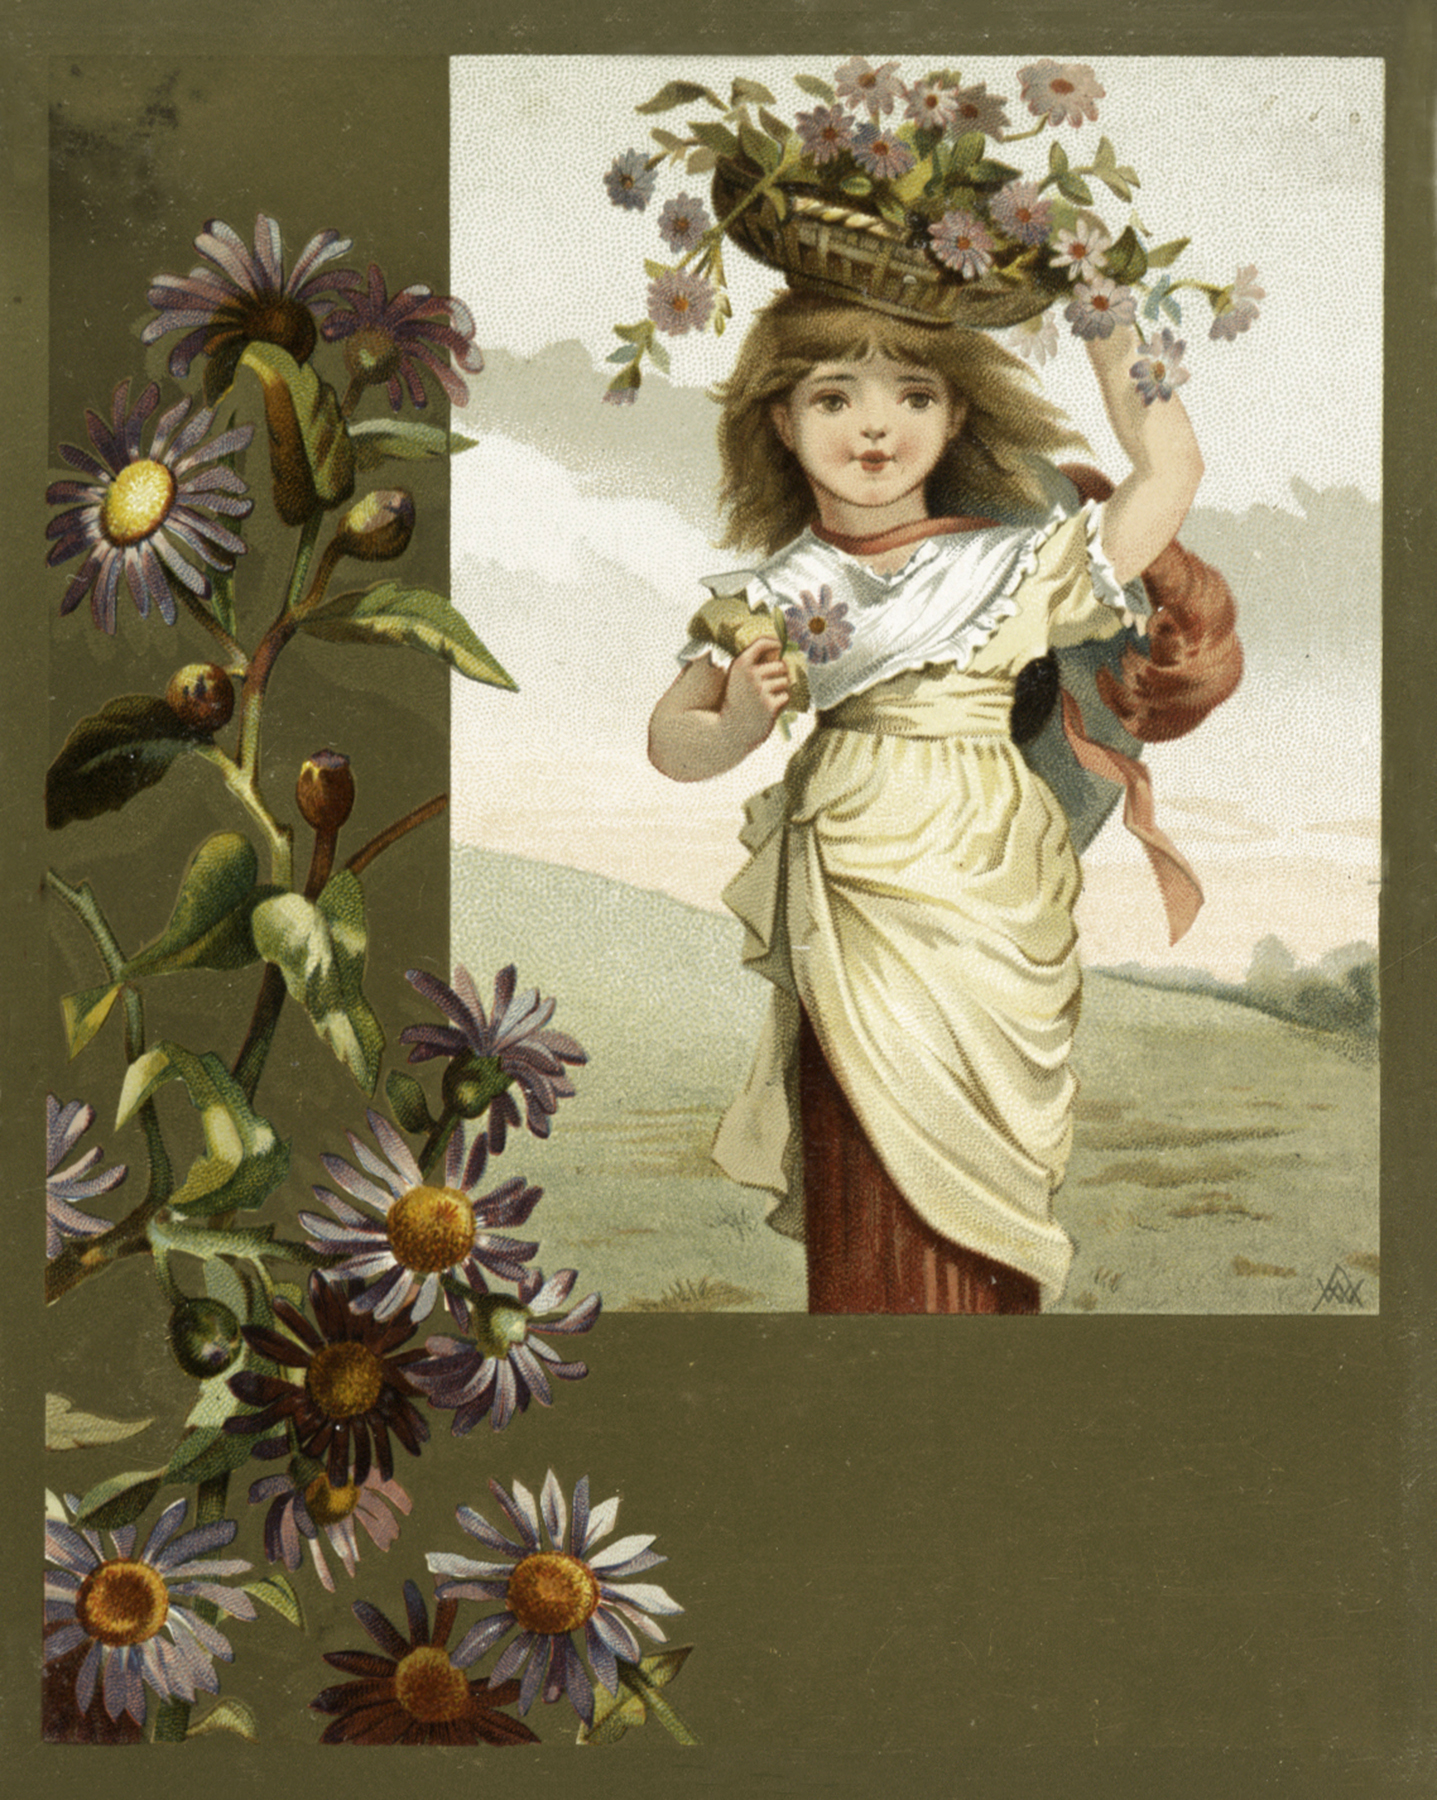 Beautiful Vintage Girl With Flower Basket image